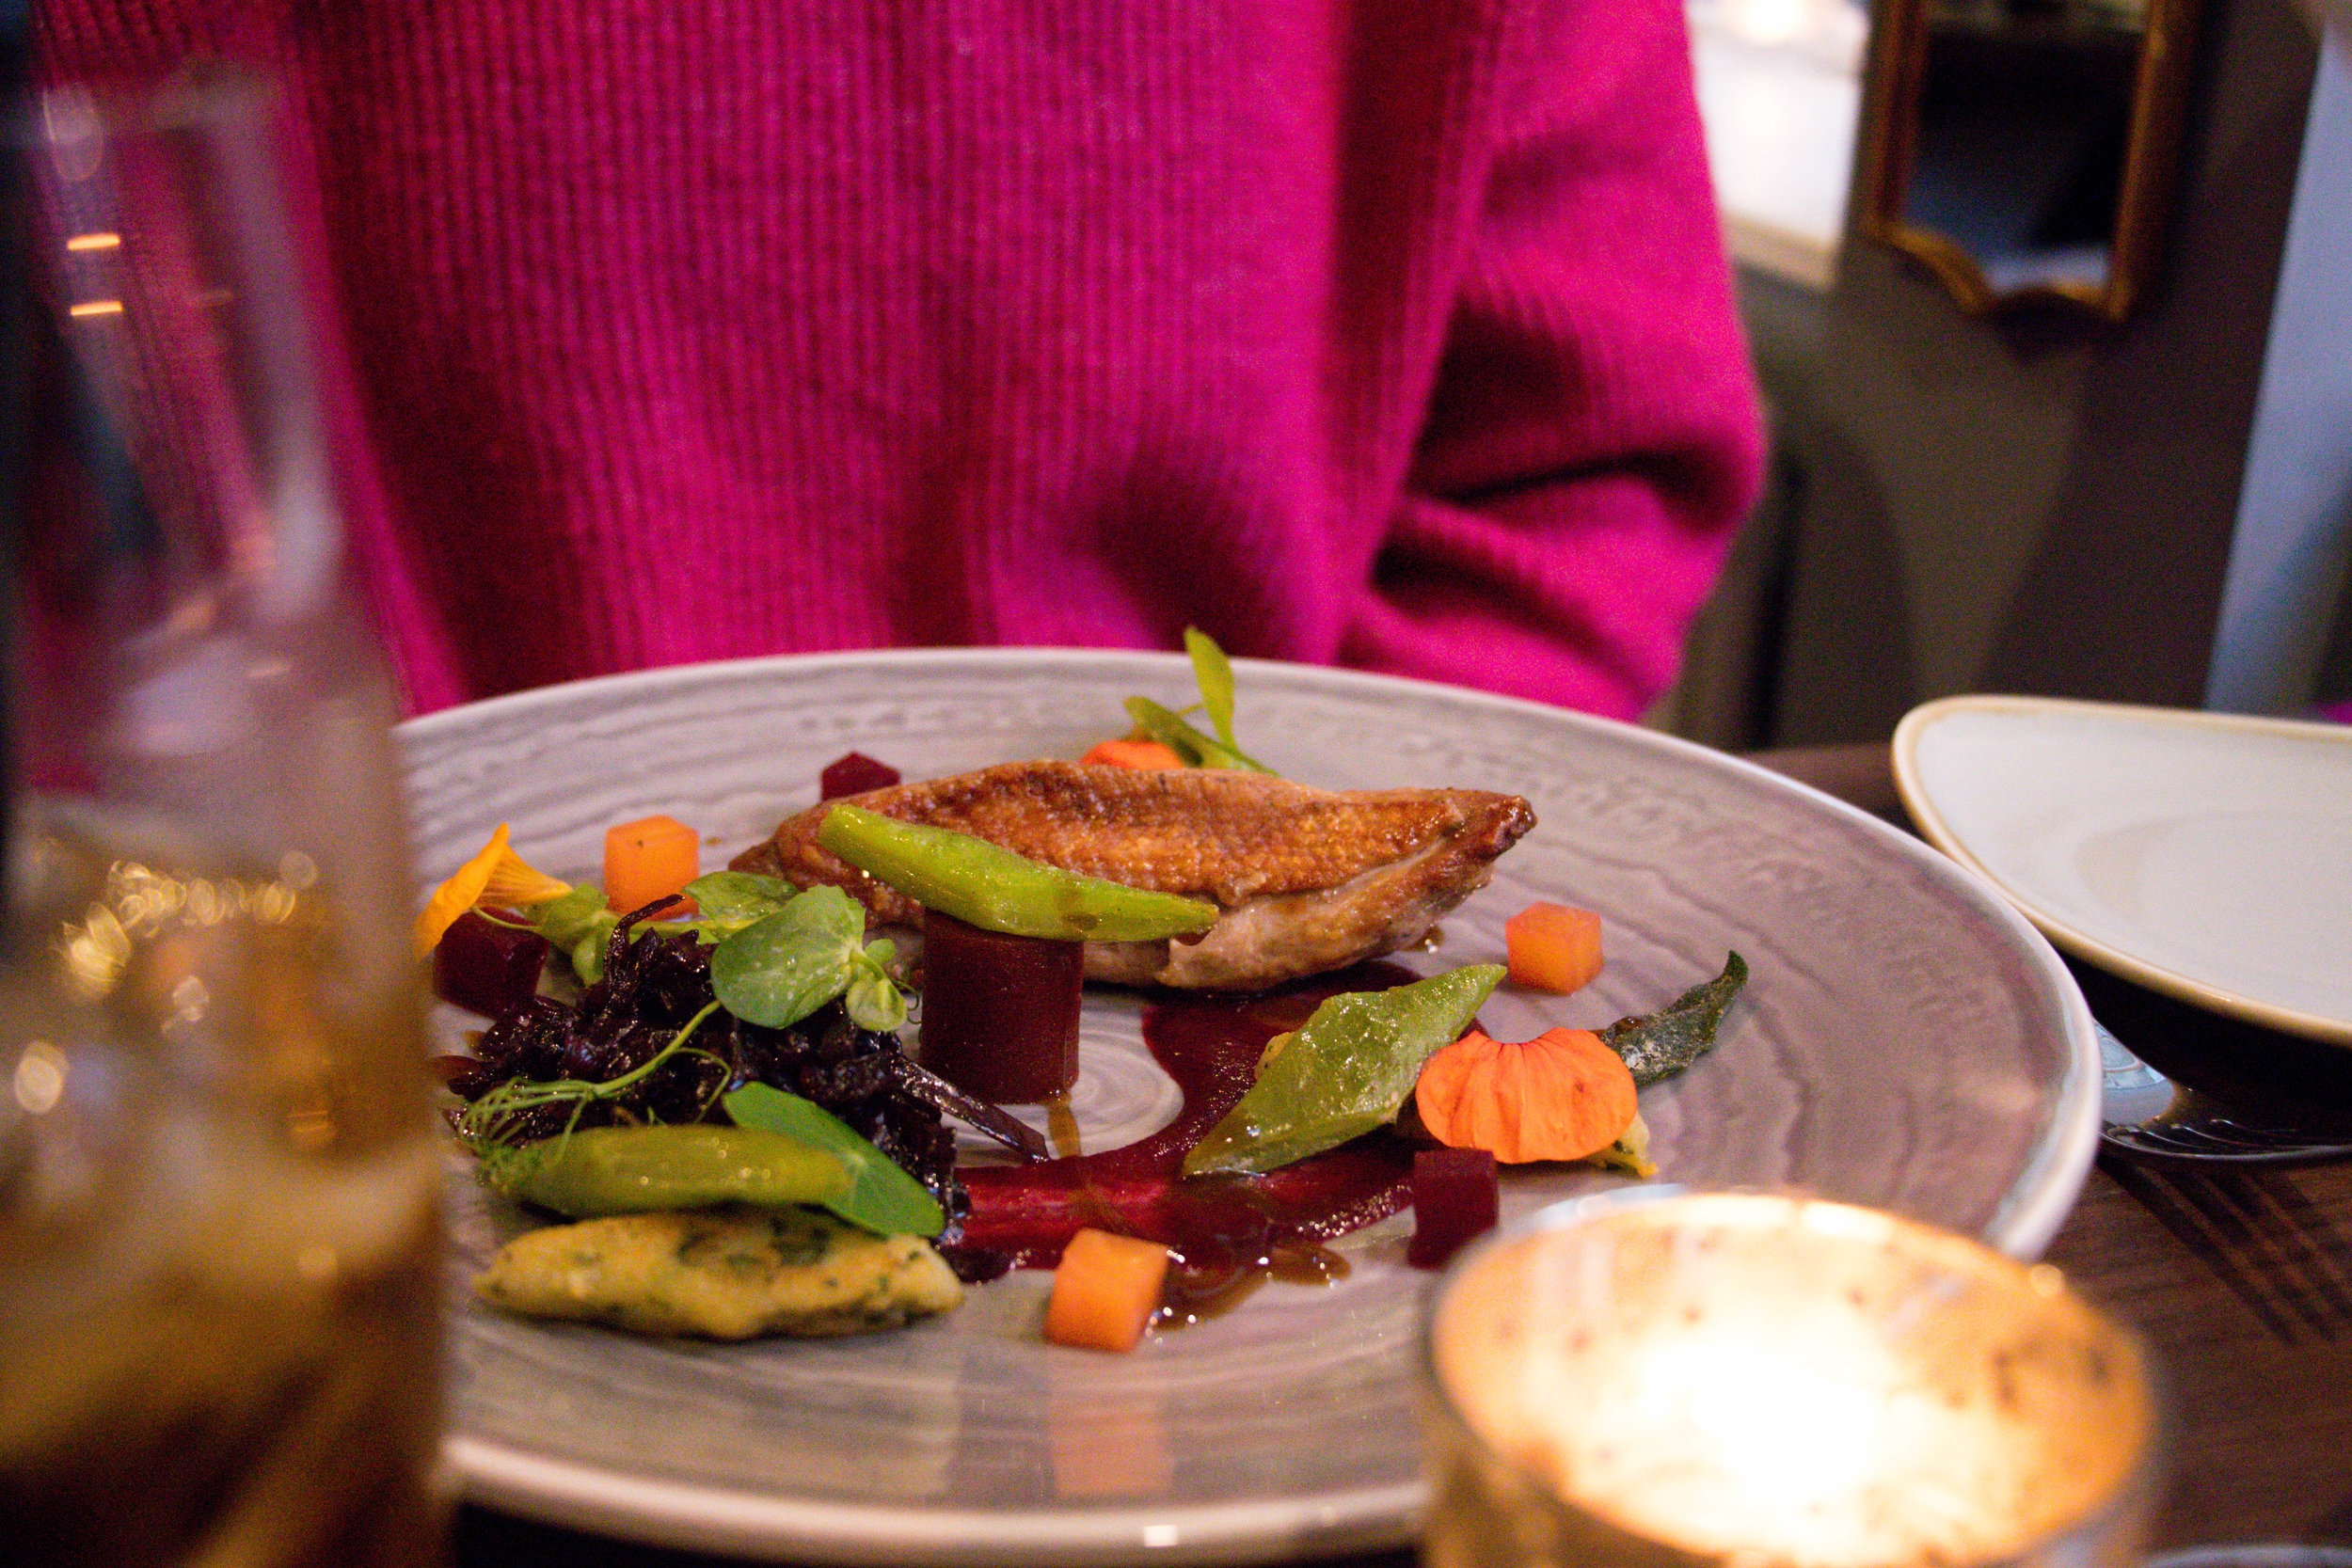 'Pan seared duck breast with beetroot, herb gnocchi, runner beans and caramelised red cabbage' (£12.95)